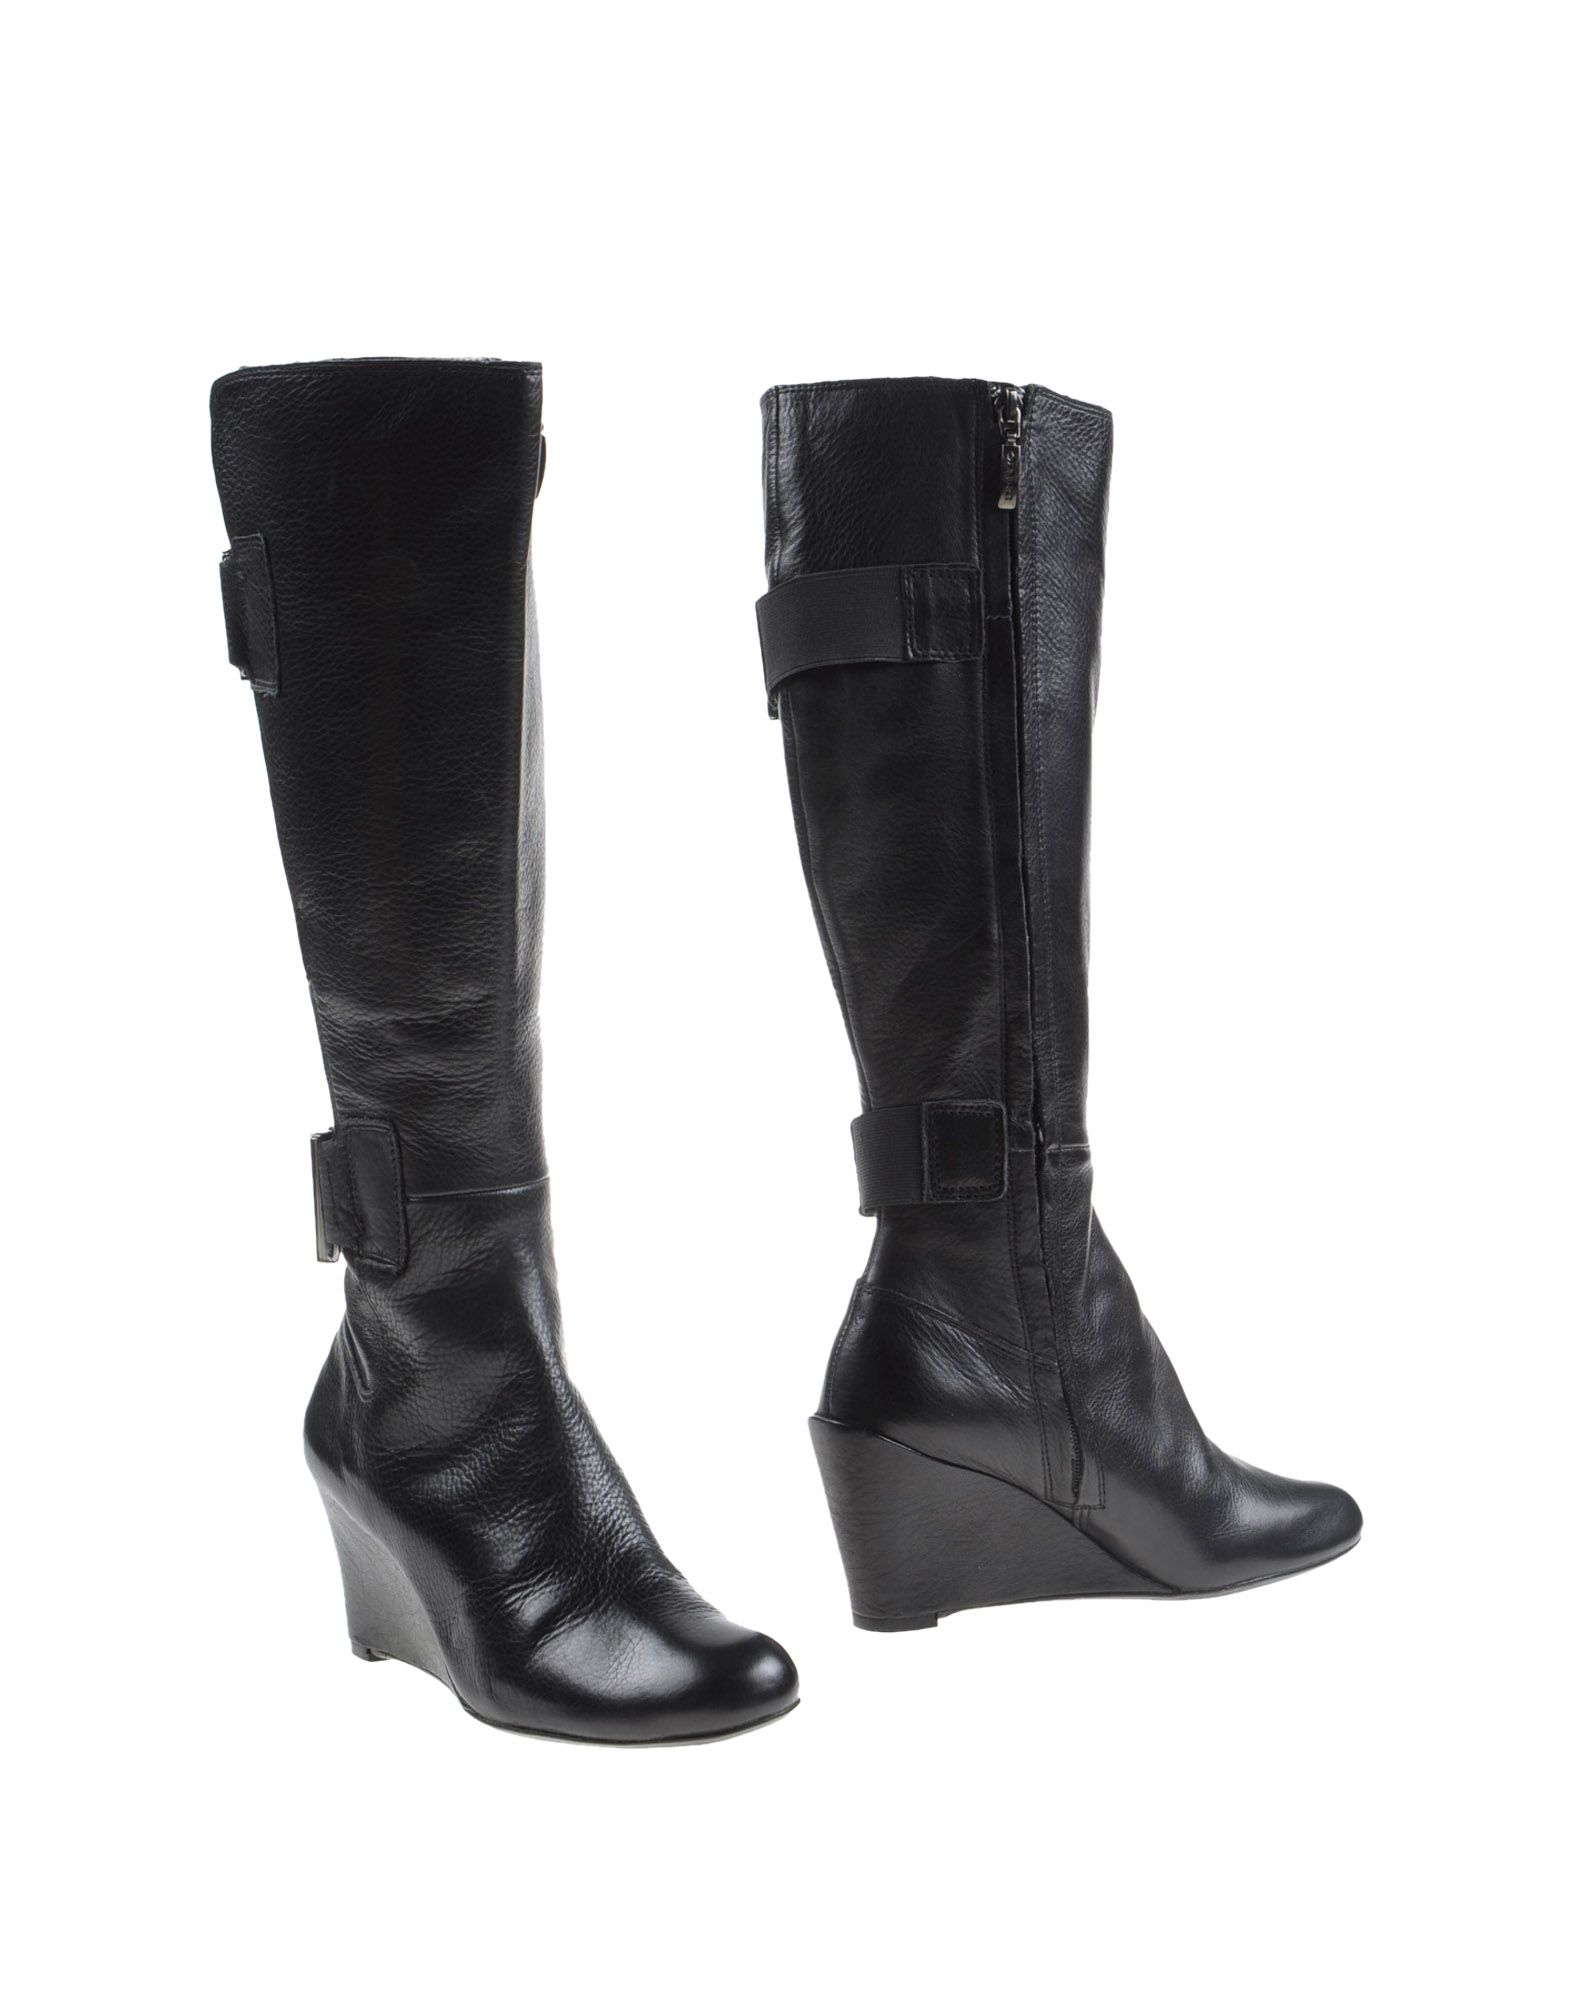 Lyst - Dkny Boots in Black